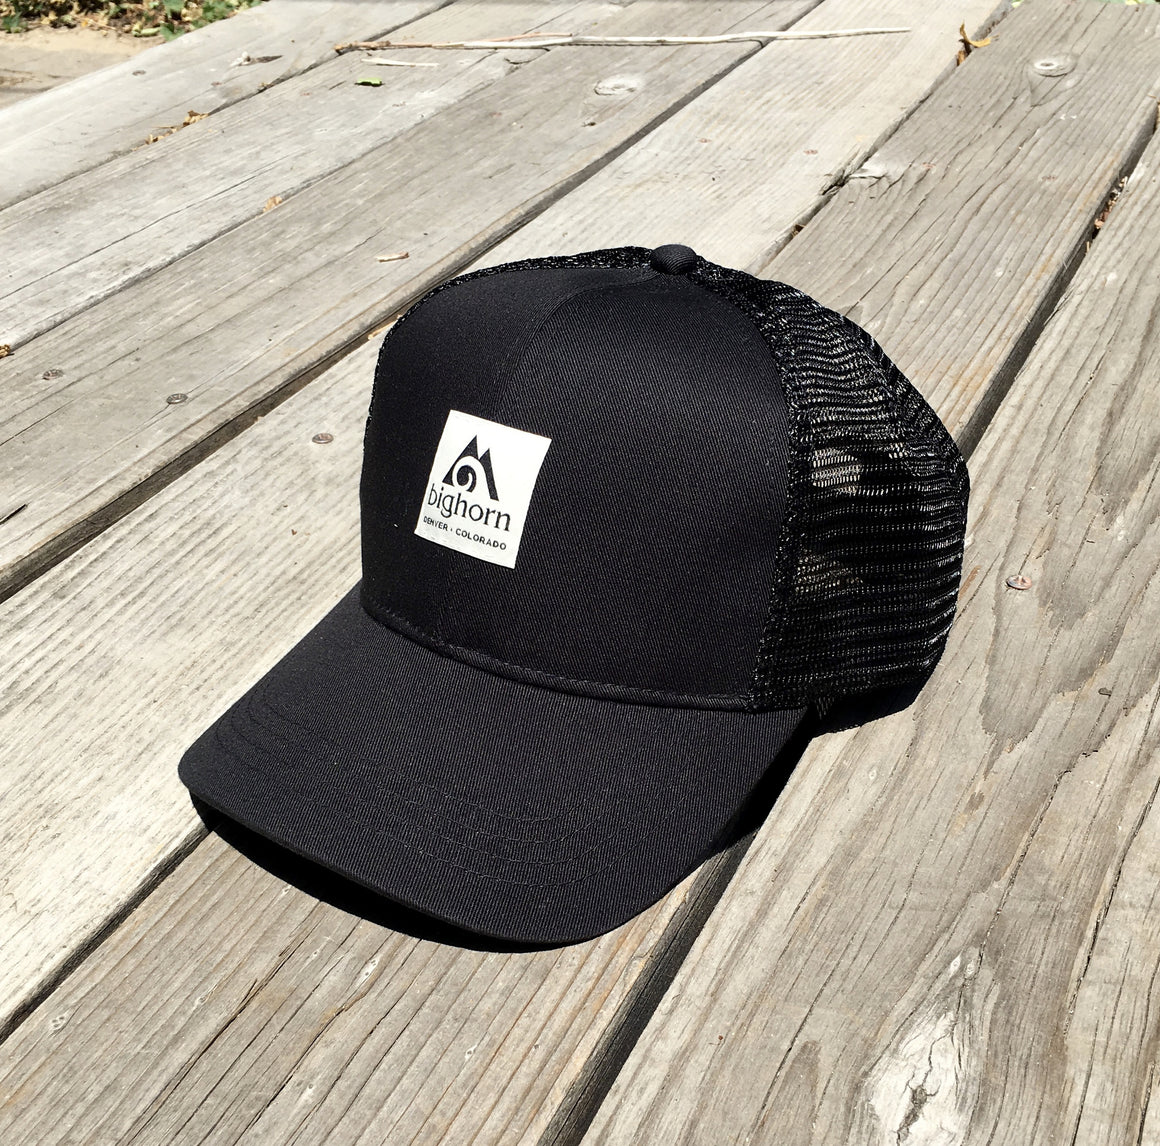 Organic cotton / recycled polyester hat - all black